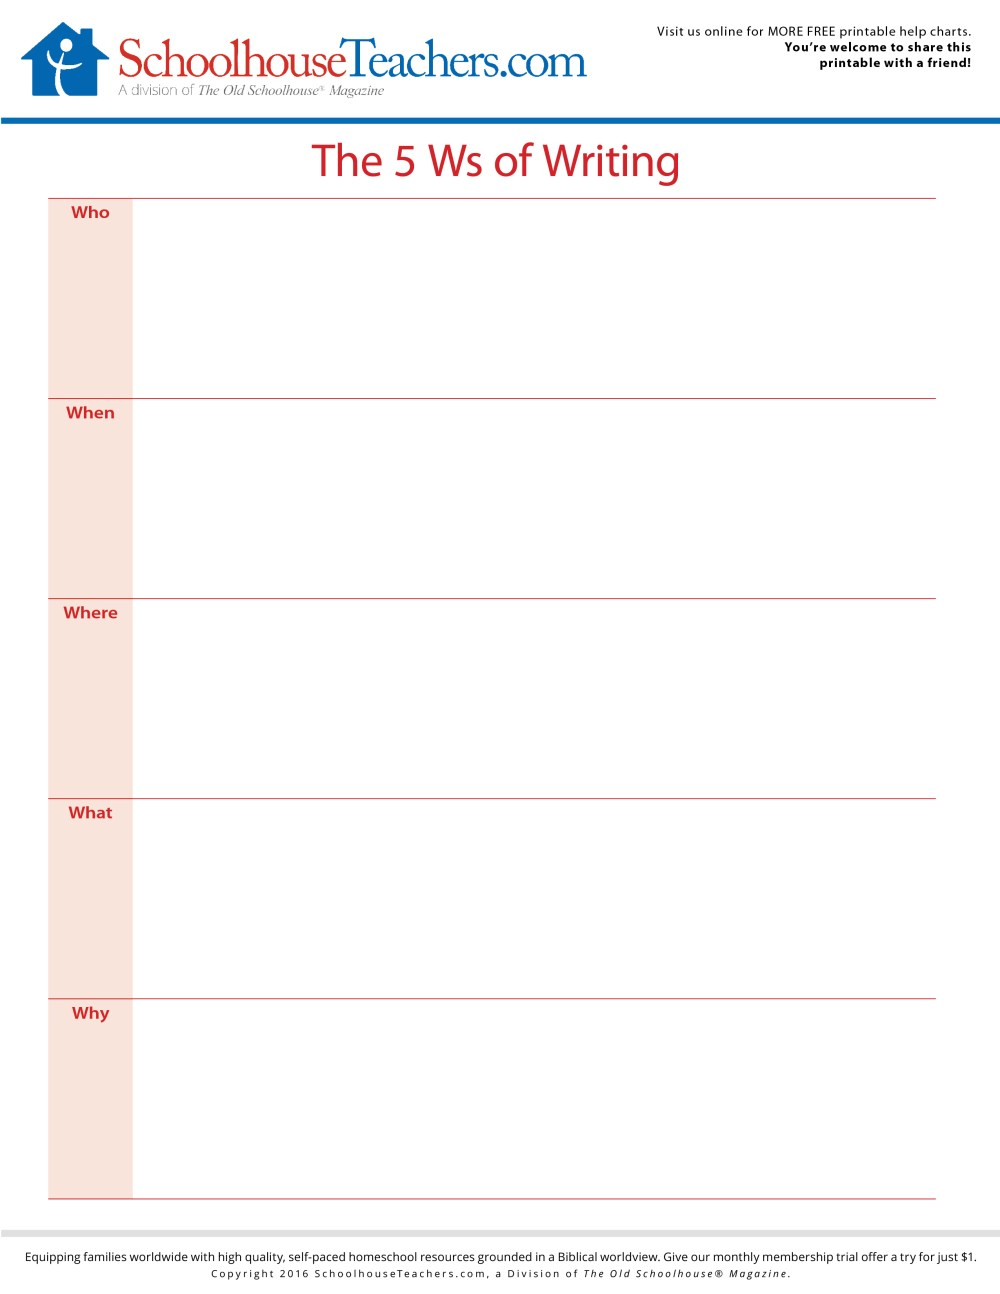 medium resolution of Free School Printable Worksheets   5 W's of Creative Writing